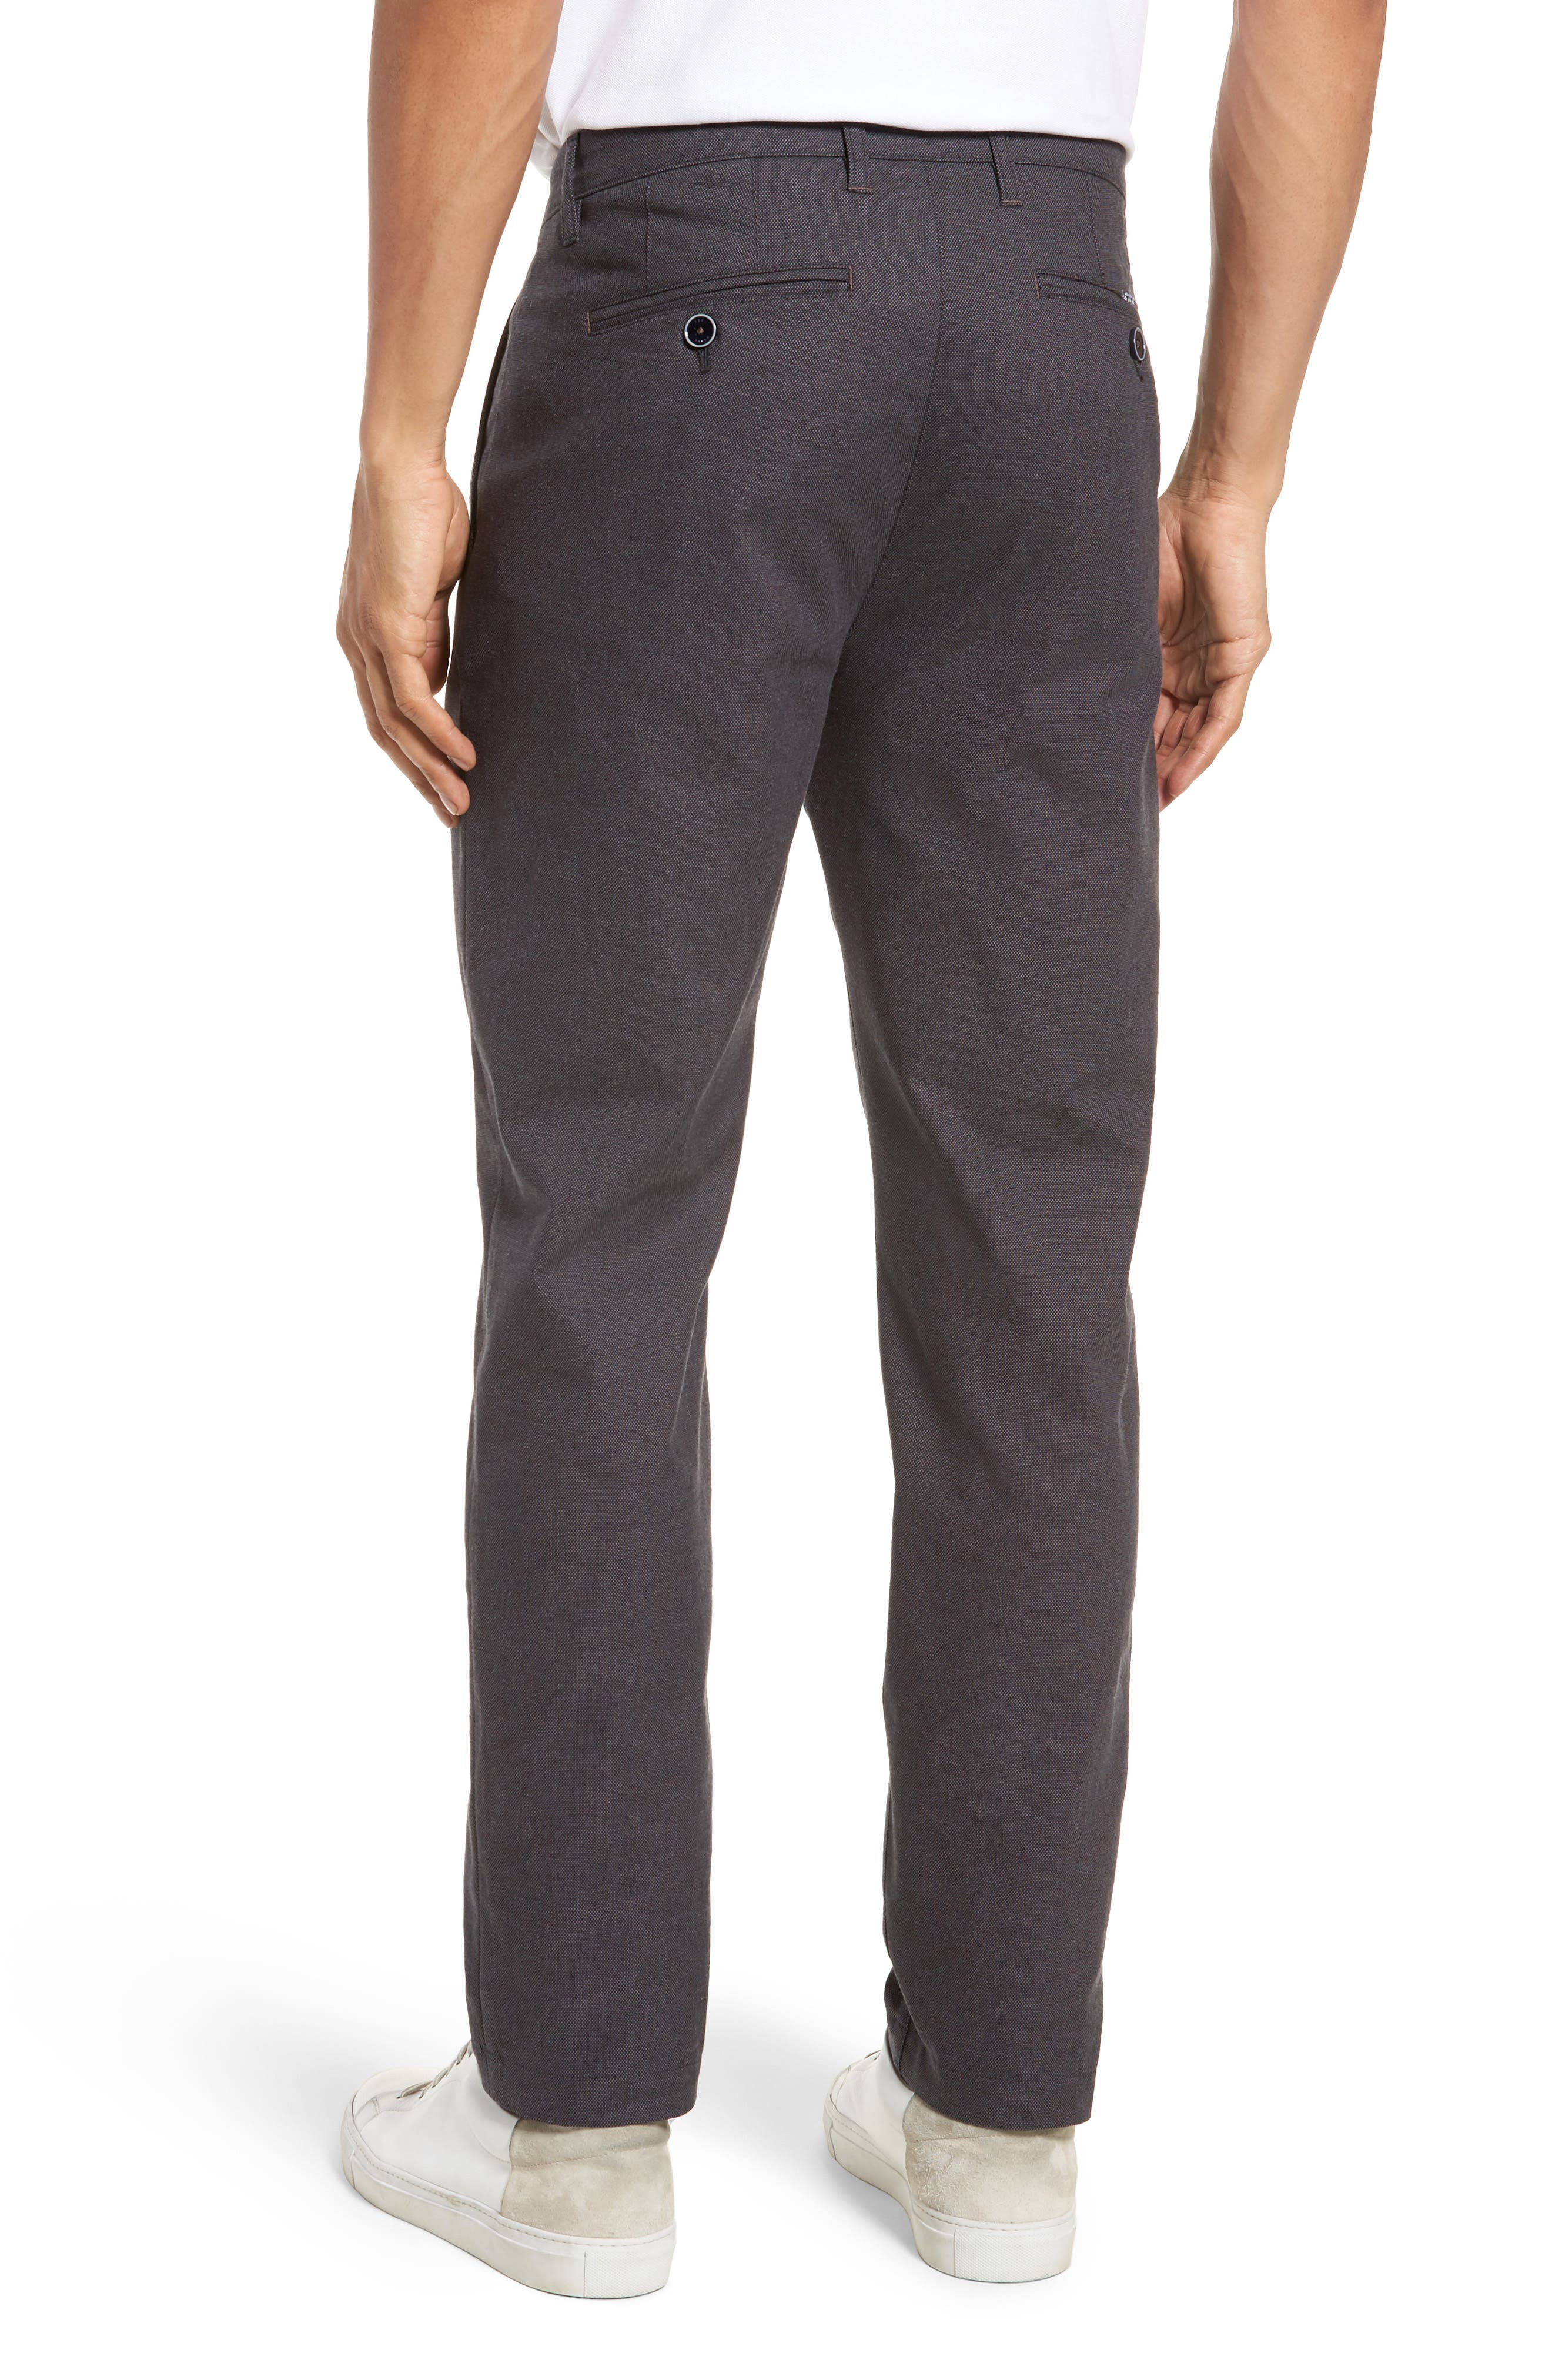 Holldet Flat Front Stretch Solid Cotton Pants,                             Alternate thumbnail 2, color,                             020